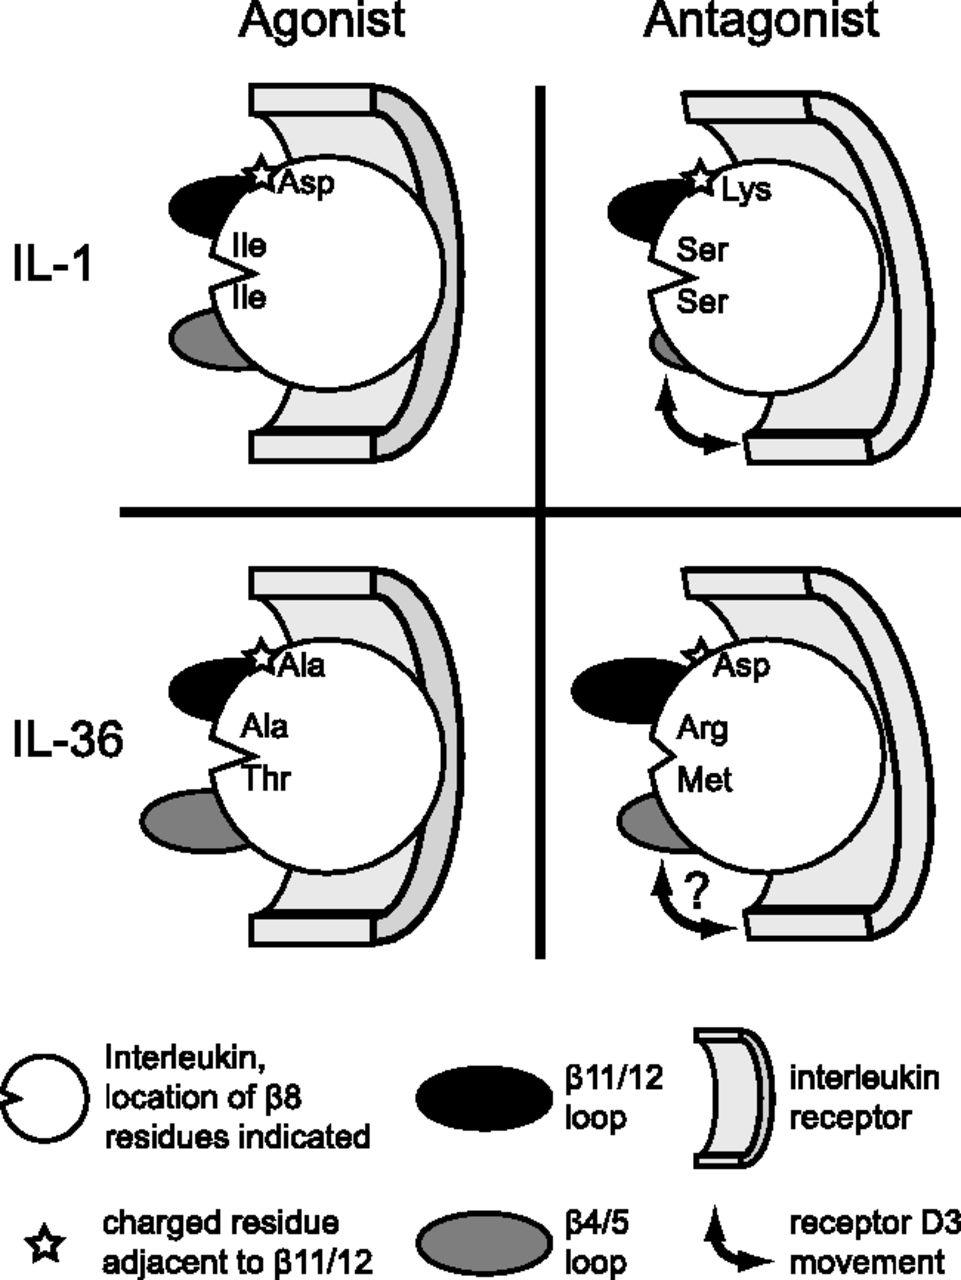 Molecular Determinants of Agonist and Antagonist Signaling